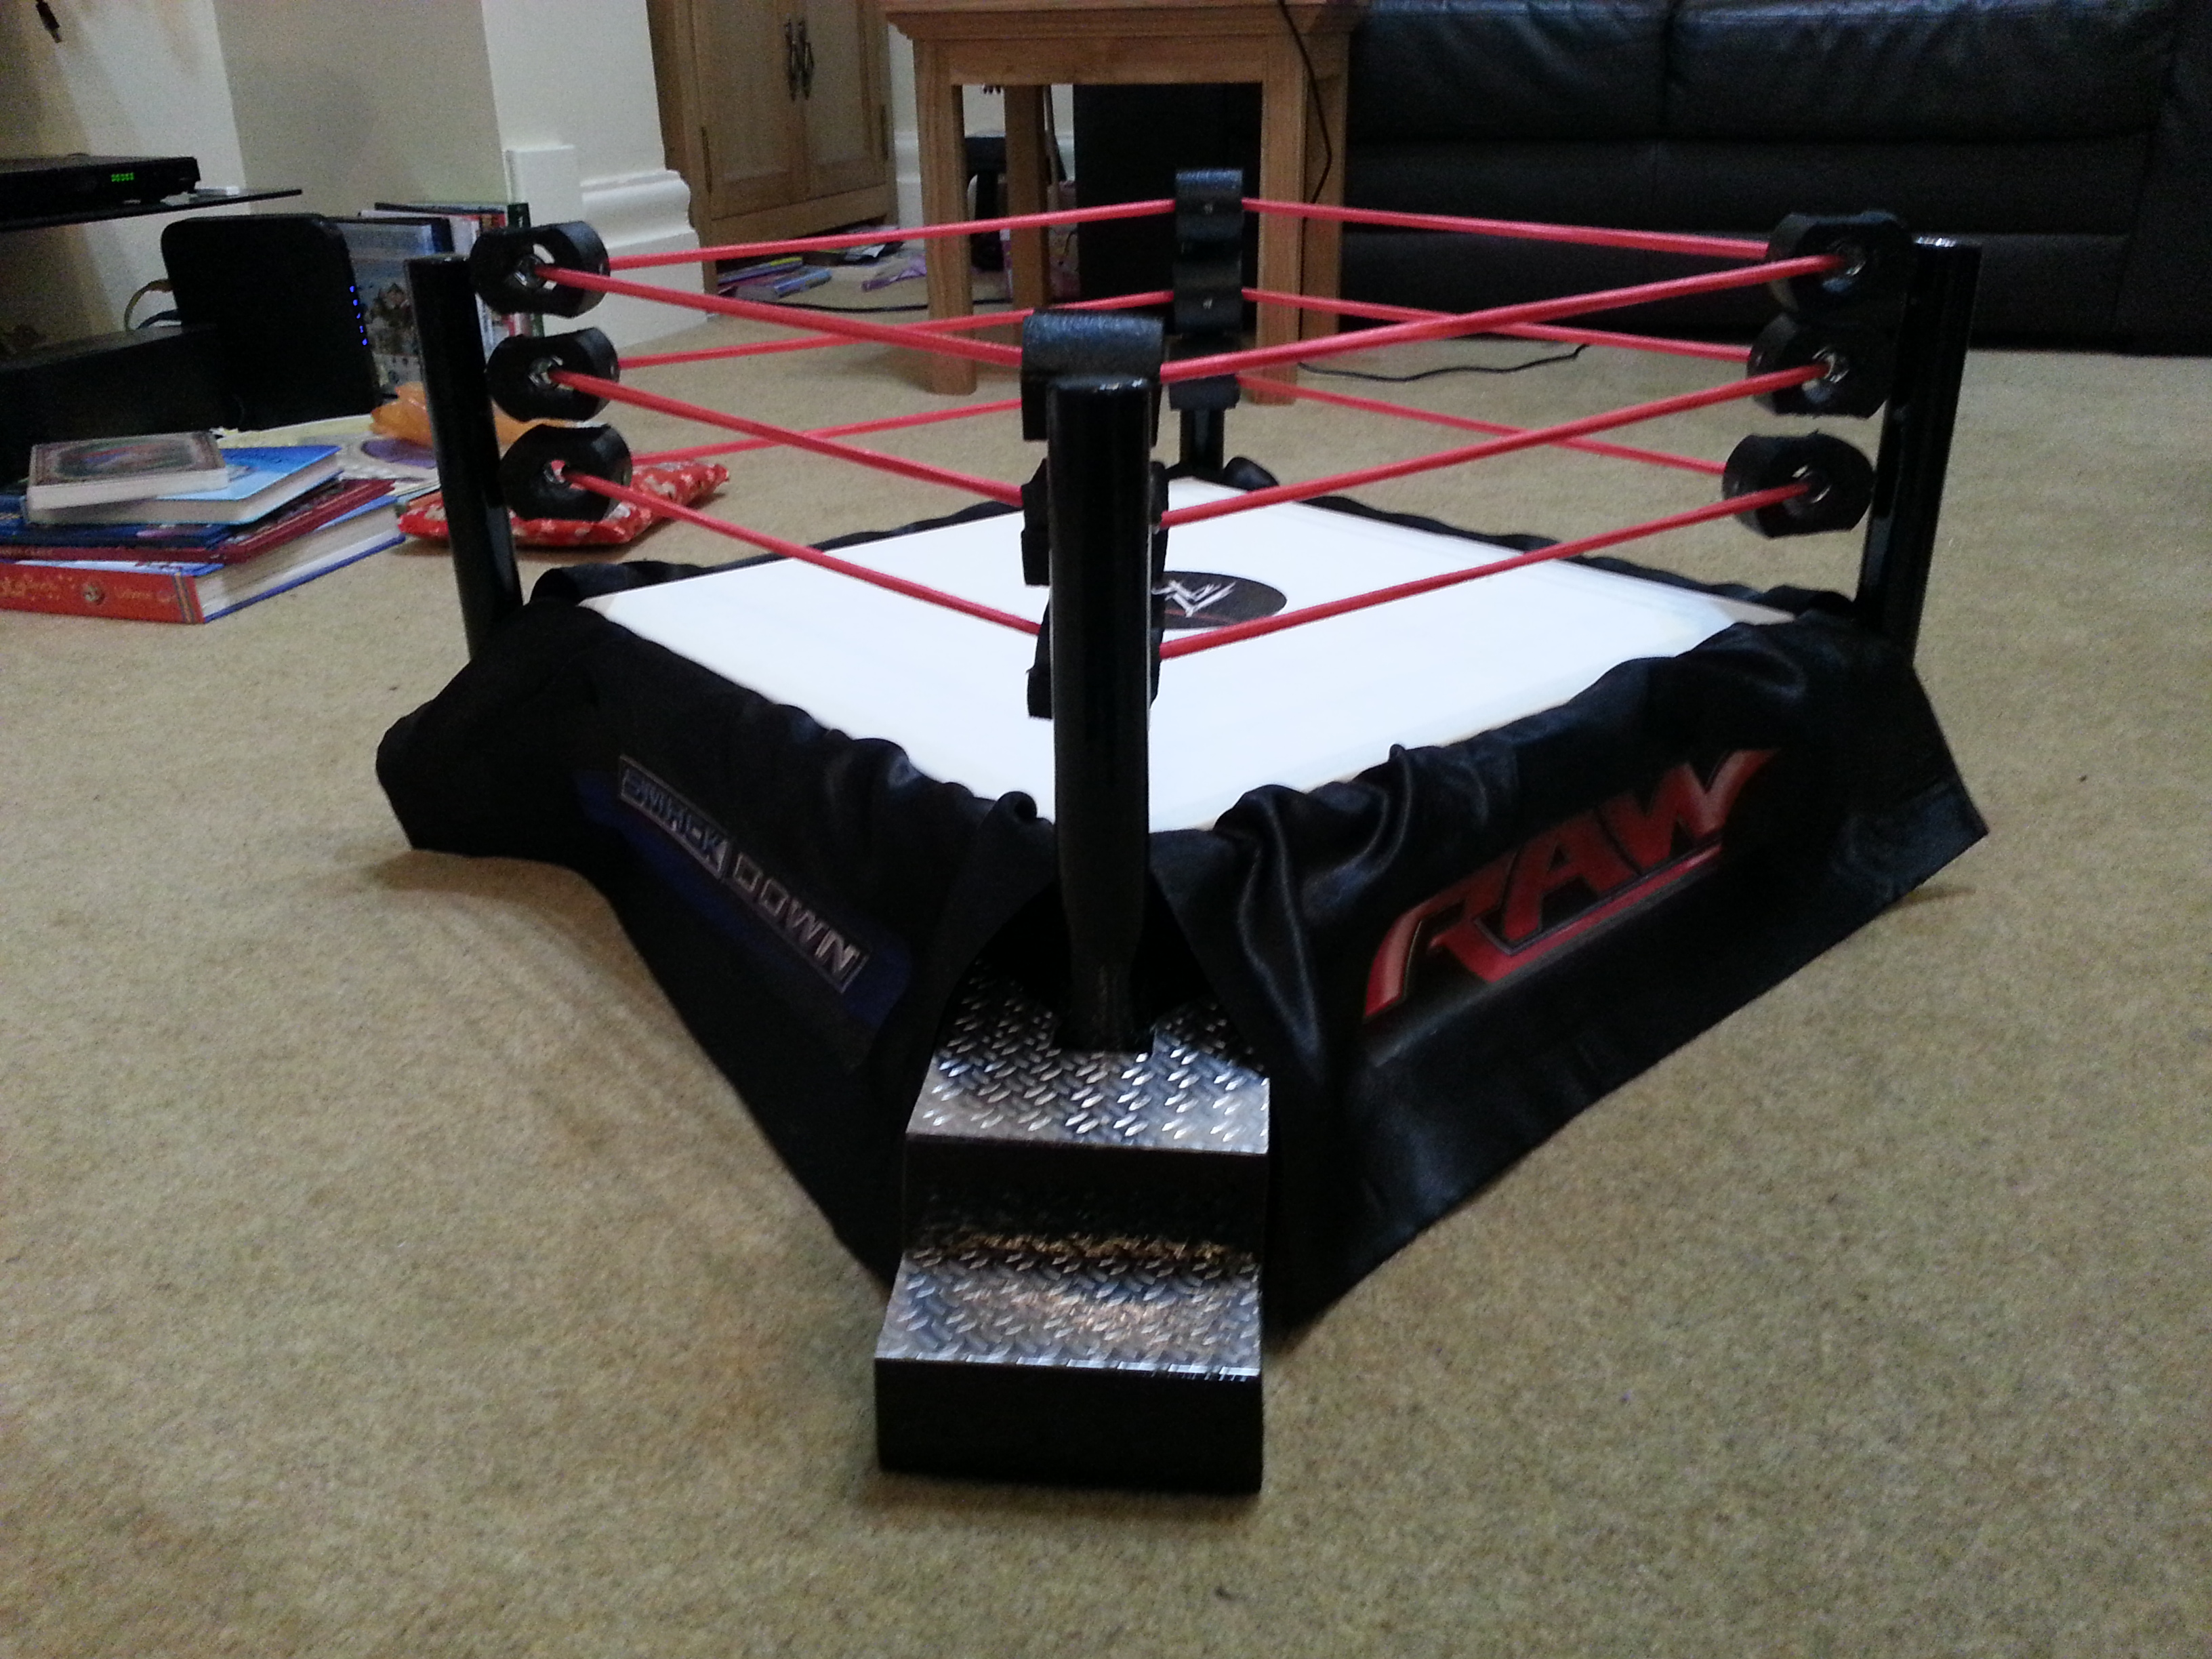 Wwe Wrestling Ring Model Scratch Build Rpf Costume And Prop Maker Community